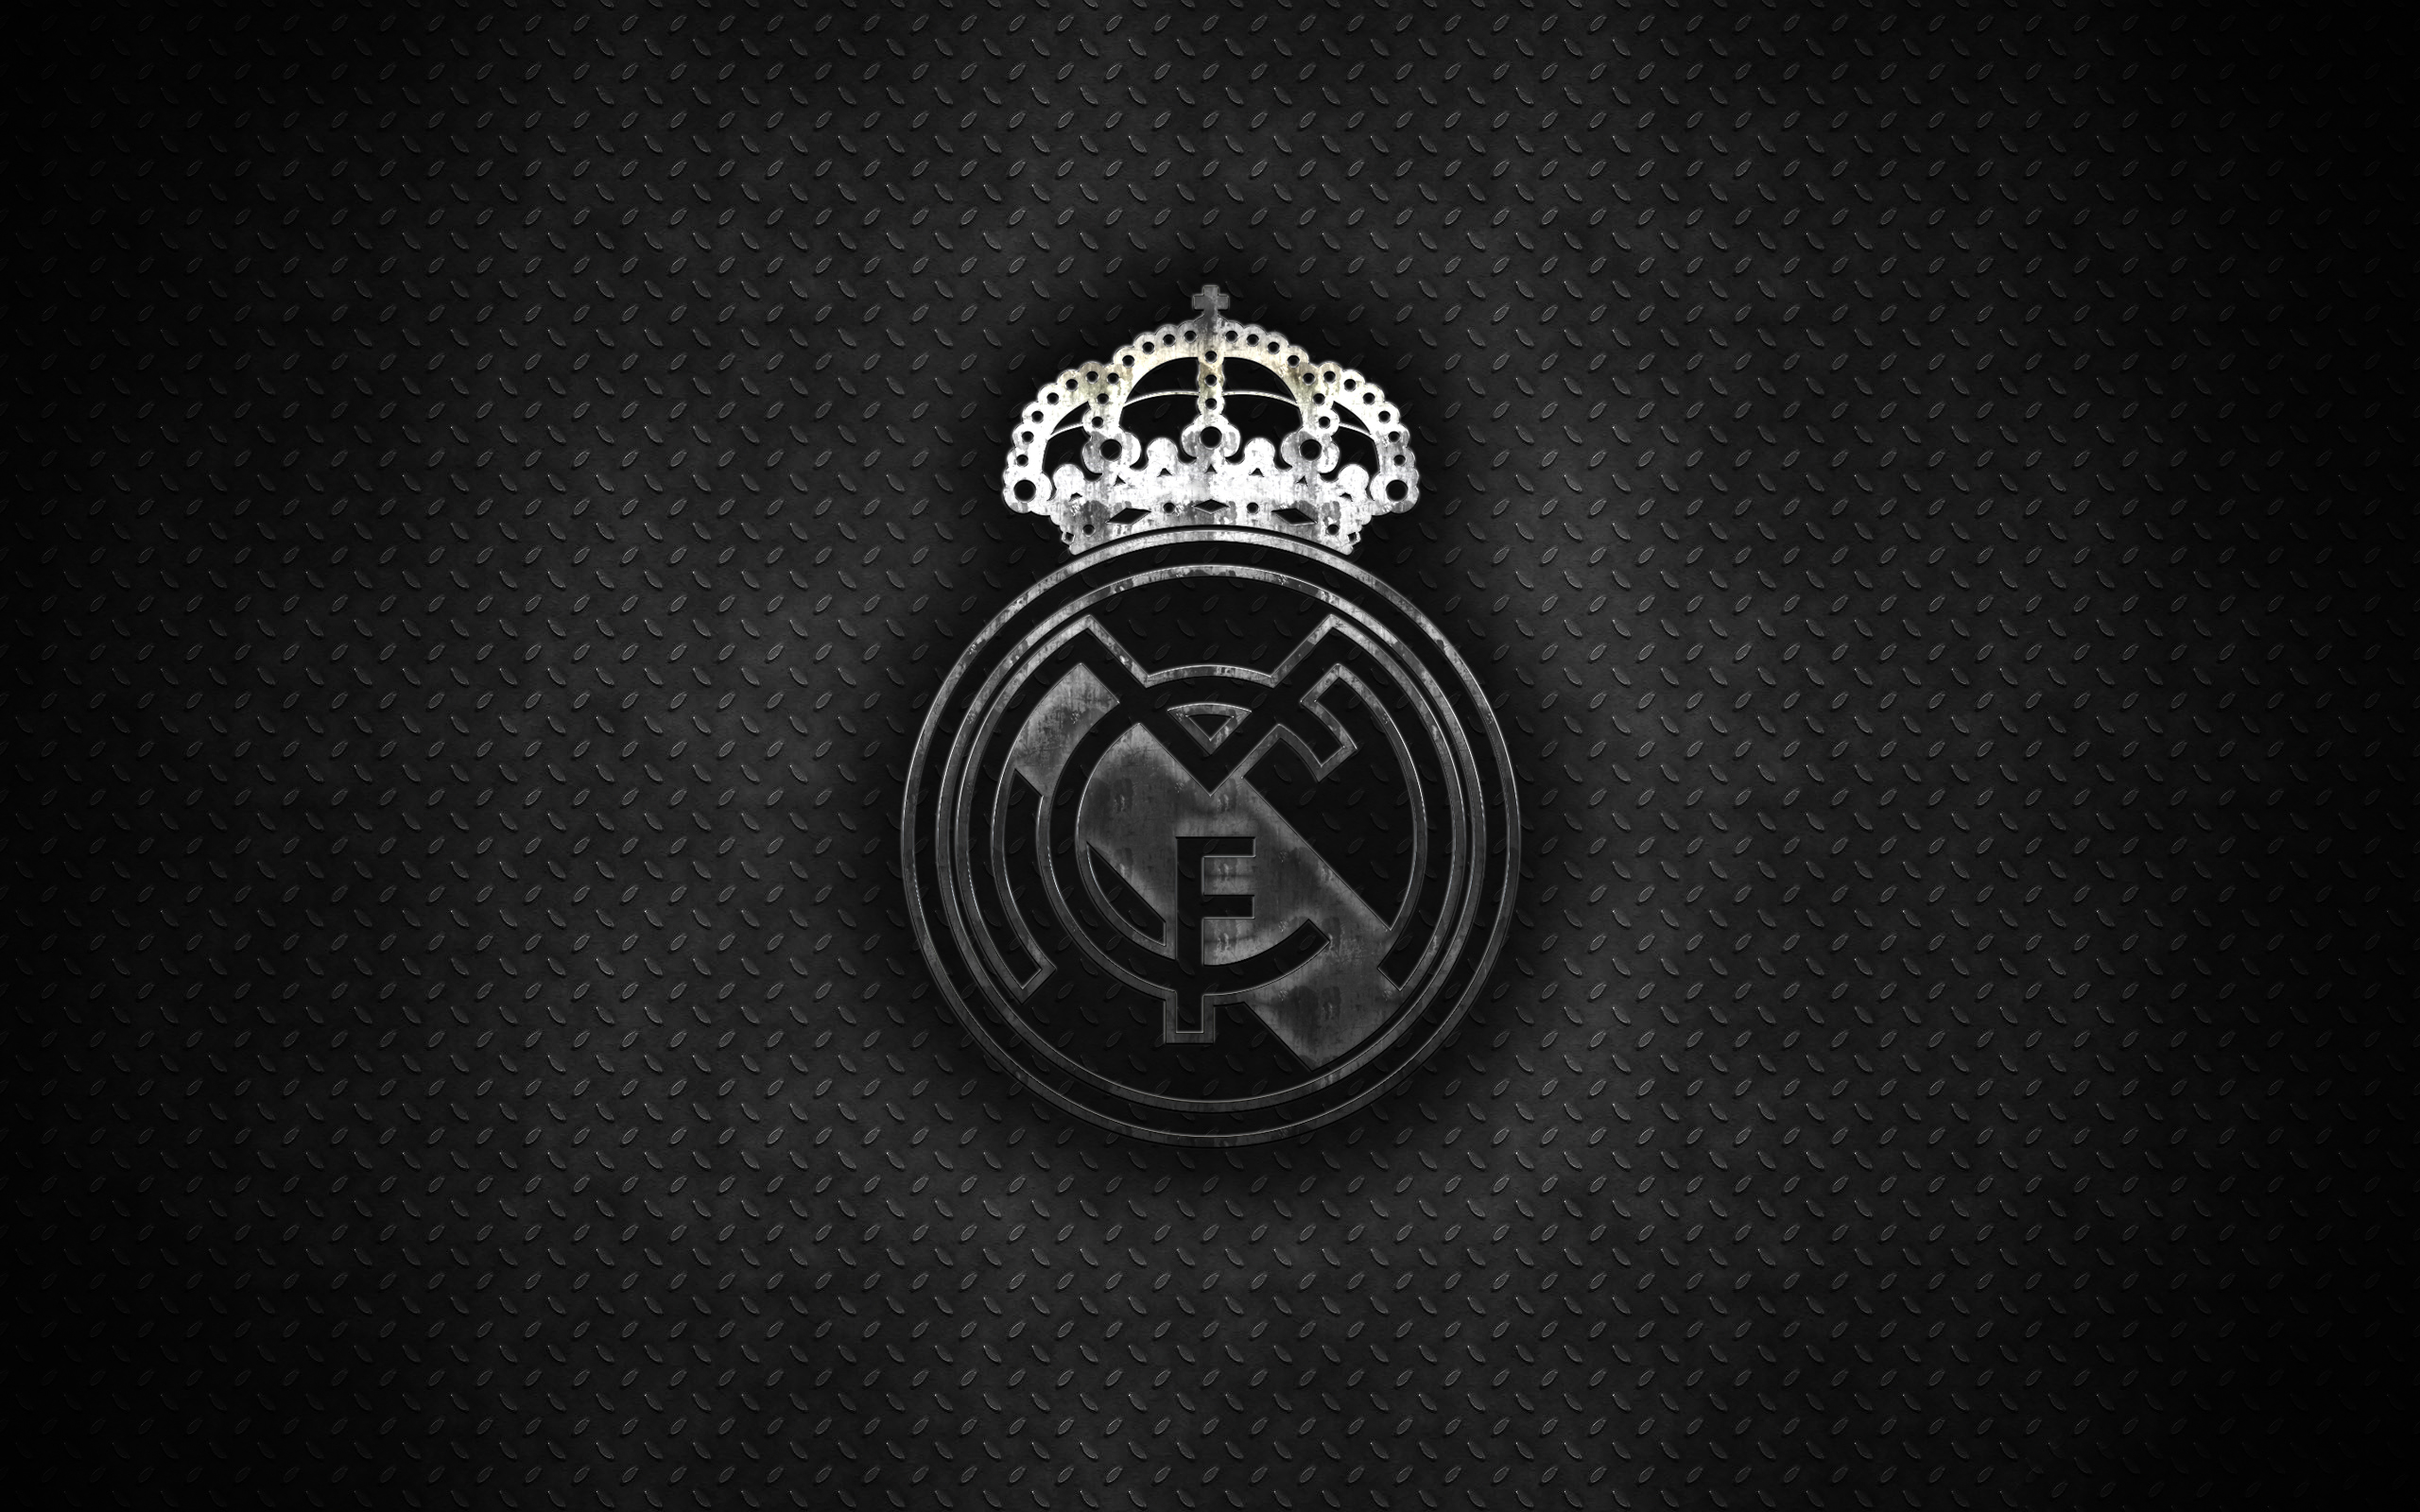 Black And White Madrid real madrid logo black and white posted by zoey johnson